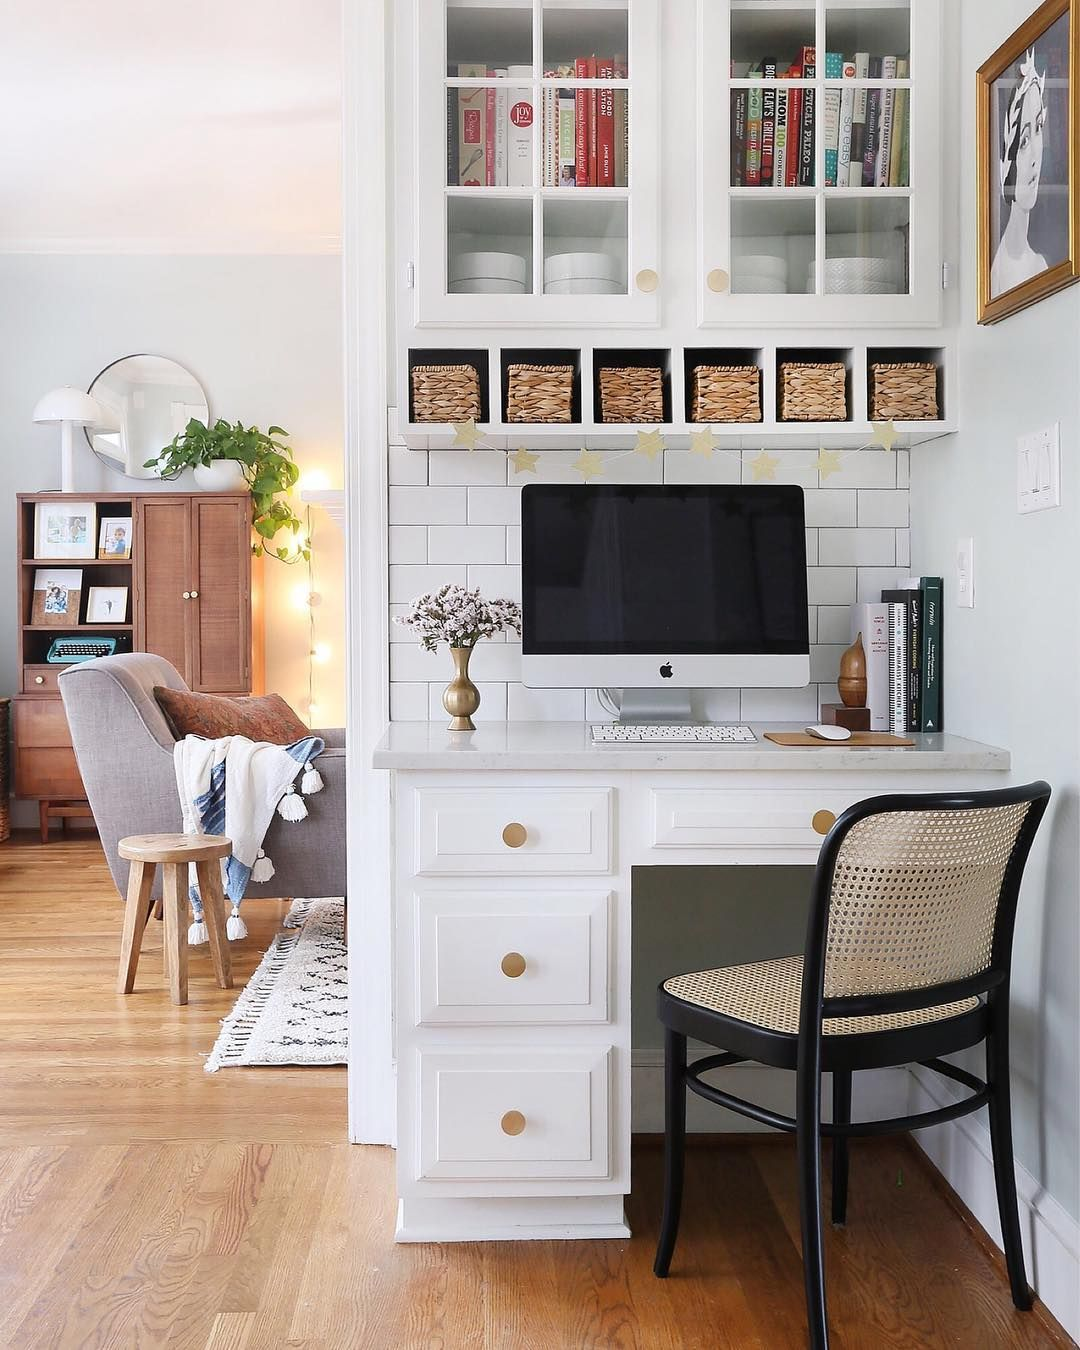 We Survived The Night And Things Are Looking Up Today I Wish My Home Was As Clean As The Picture Makes It L Kitchen Office Nook Desk In Living Room Home